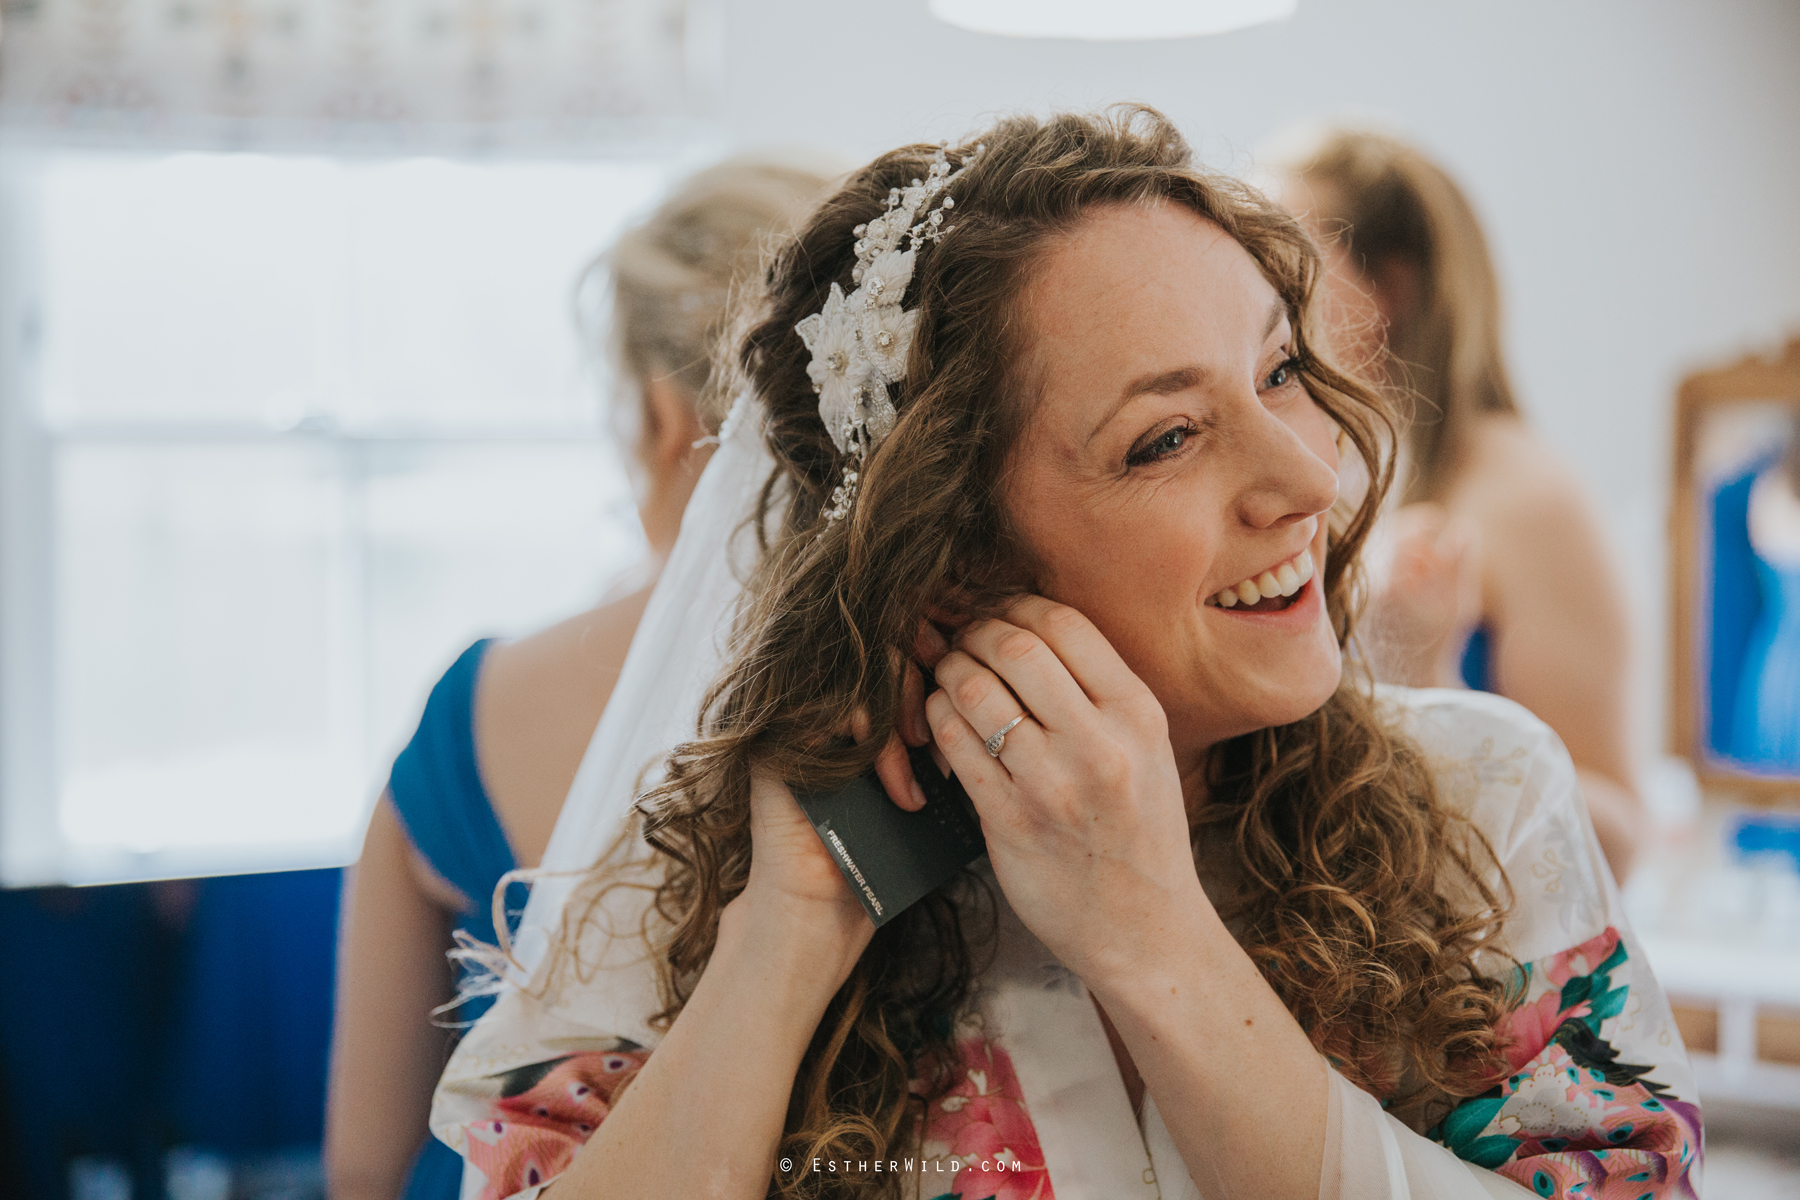 The_BoatHouse_Wedding_Venue_Ormesby_Norfolk_Broads_Boat_Wedding_Photography_Esther_Wild_Photographer_IMG_0508.jpg